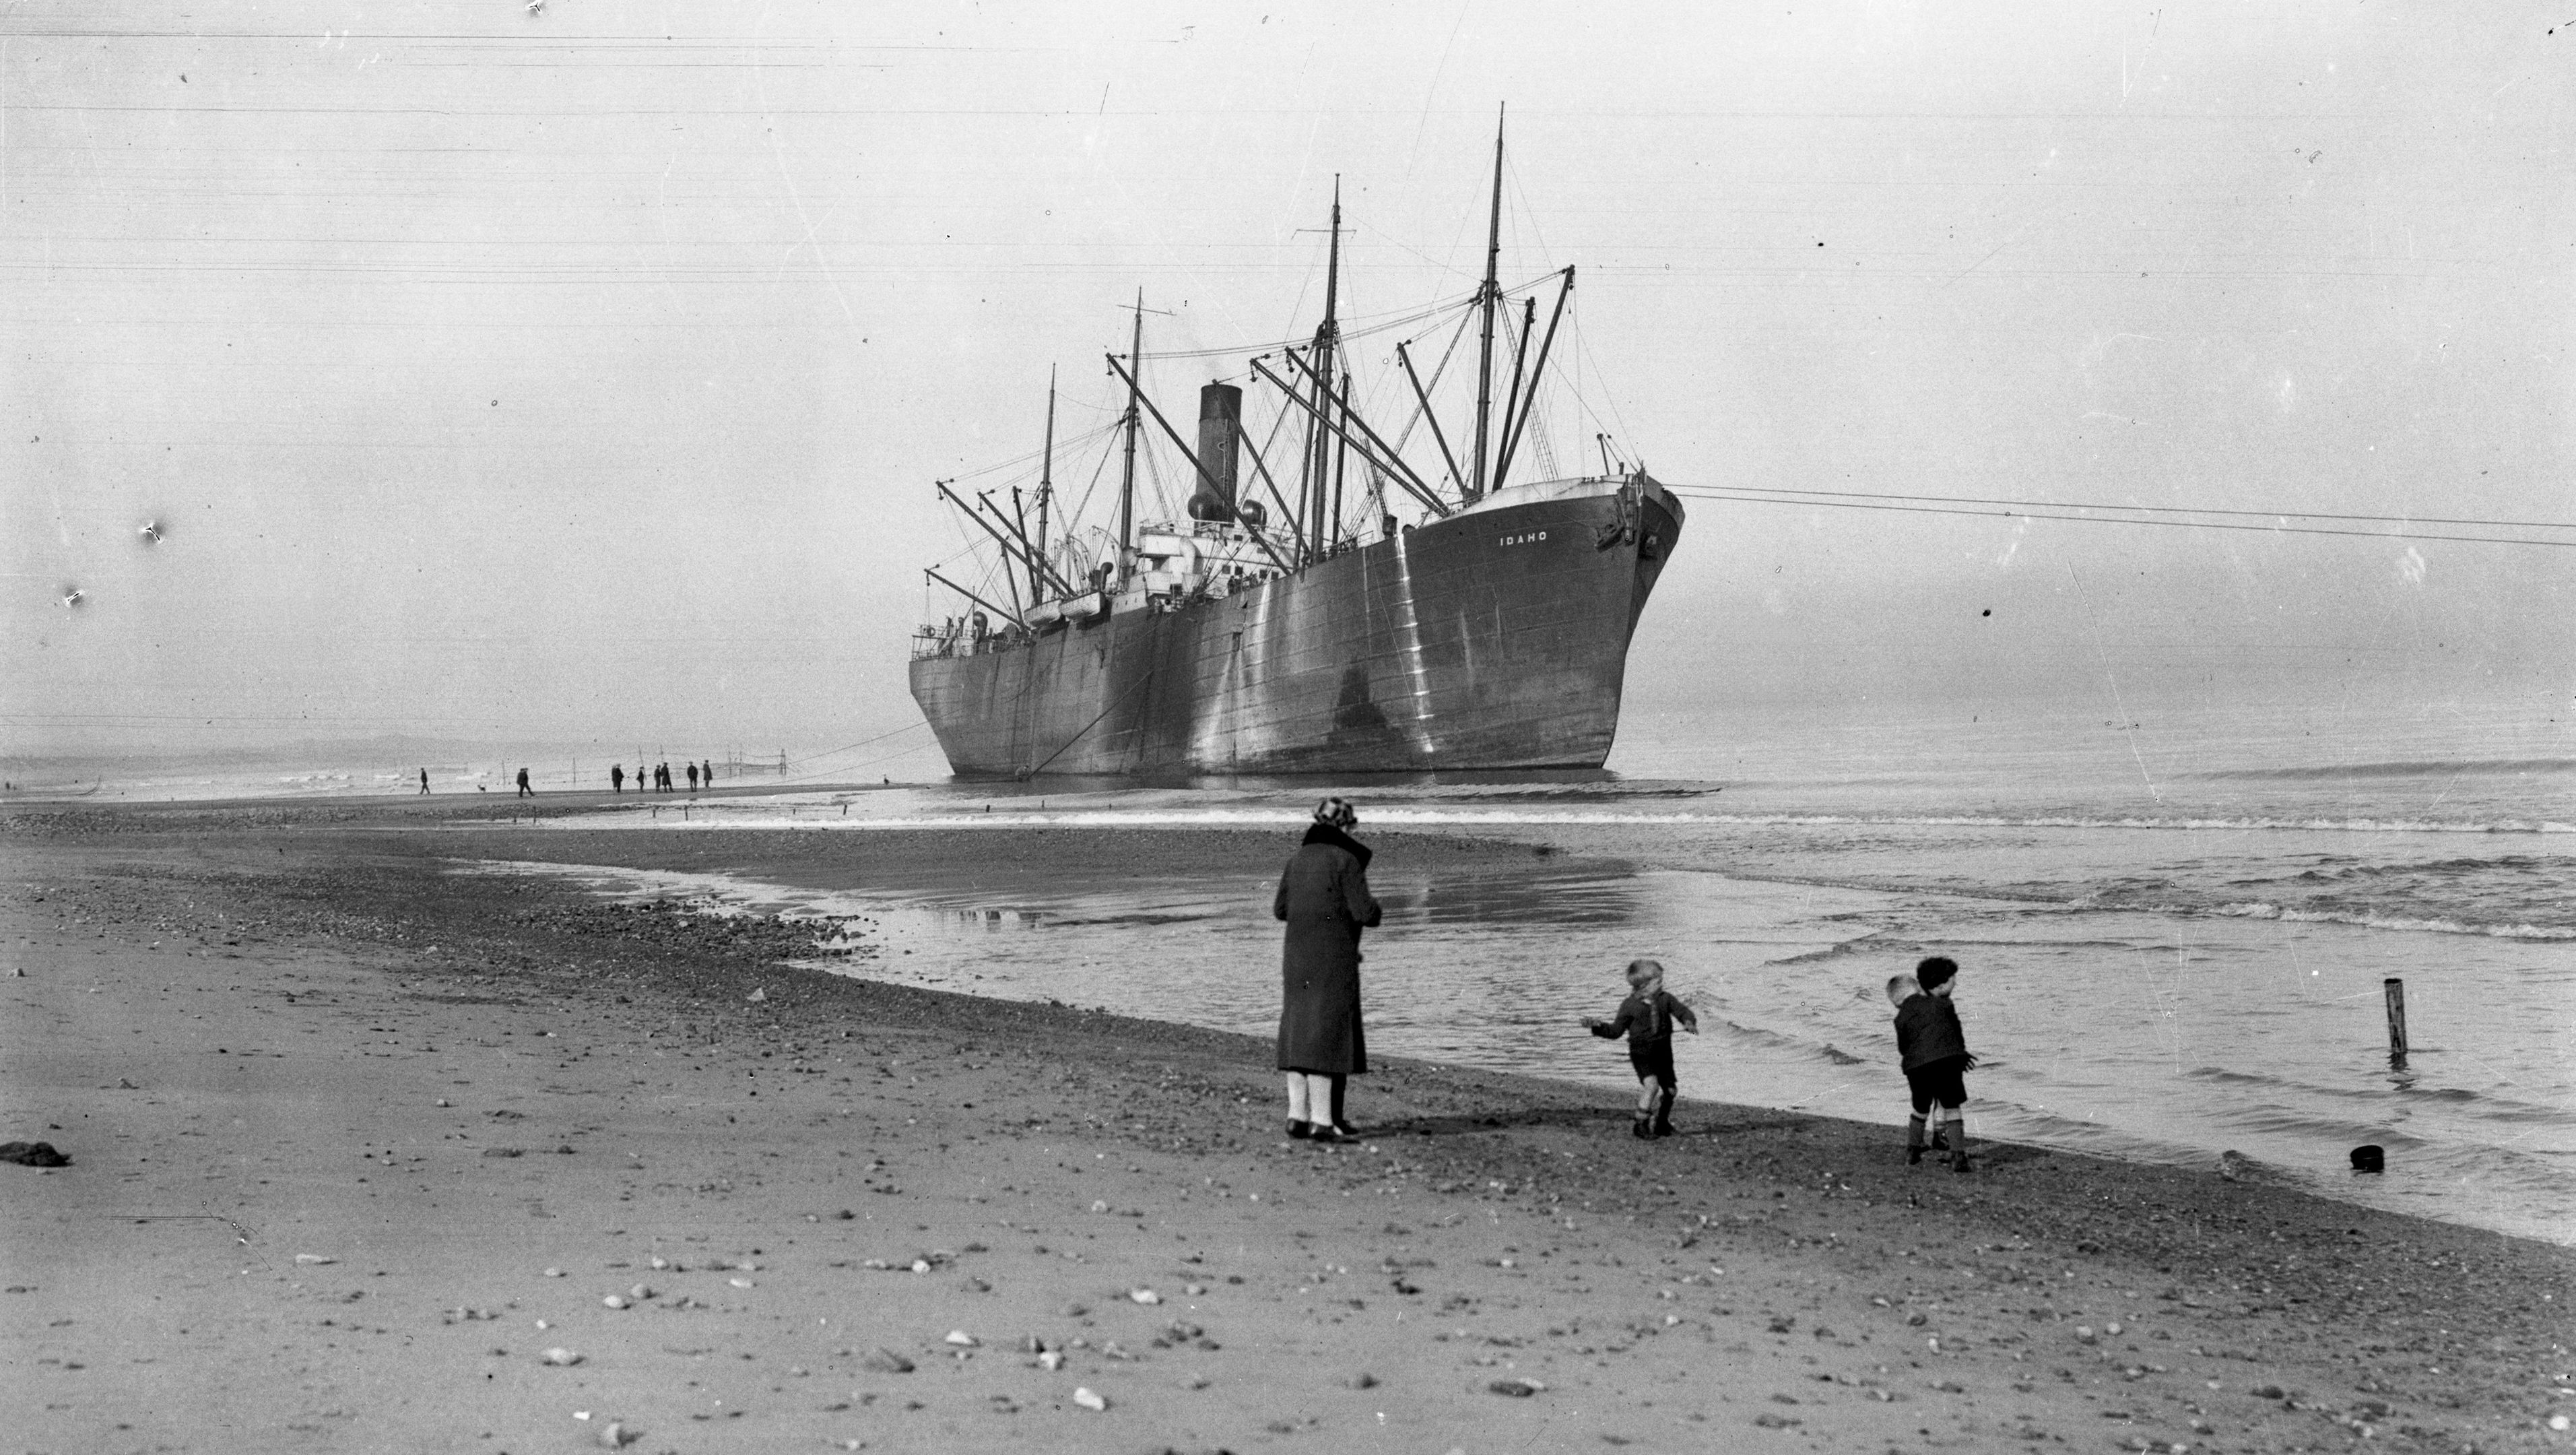 The Idaho ran aground at Aberdeen beach after it missed the harbour entrance in thick fog.